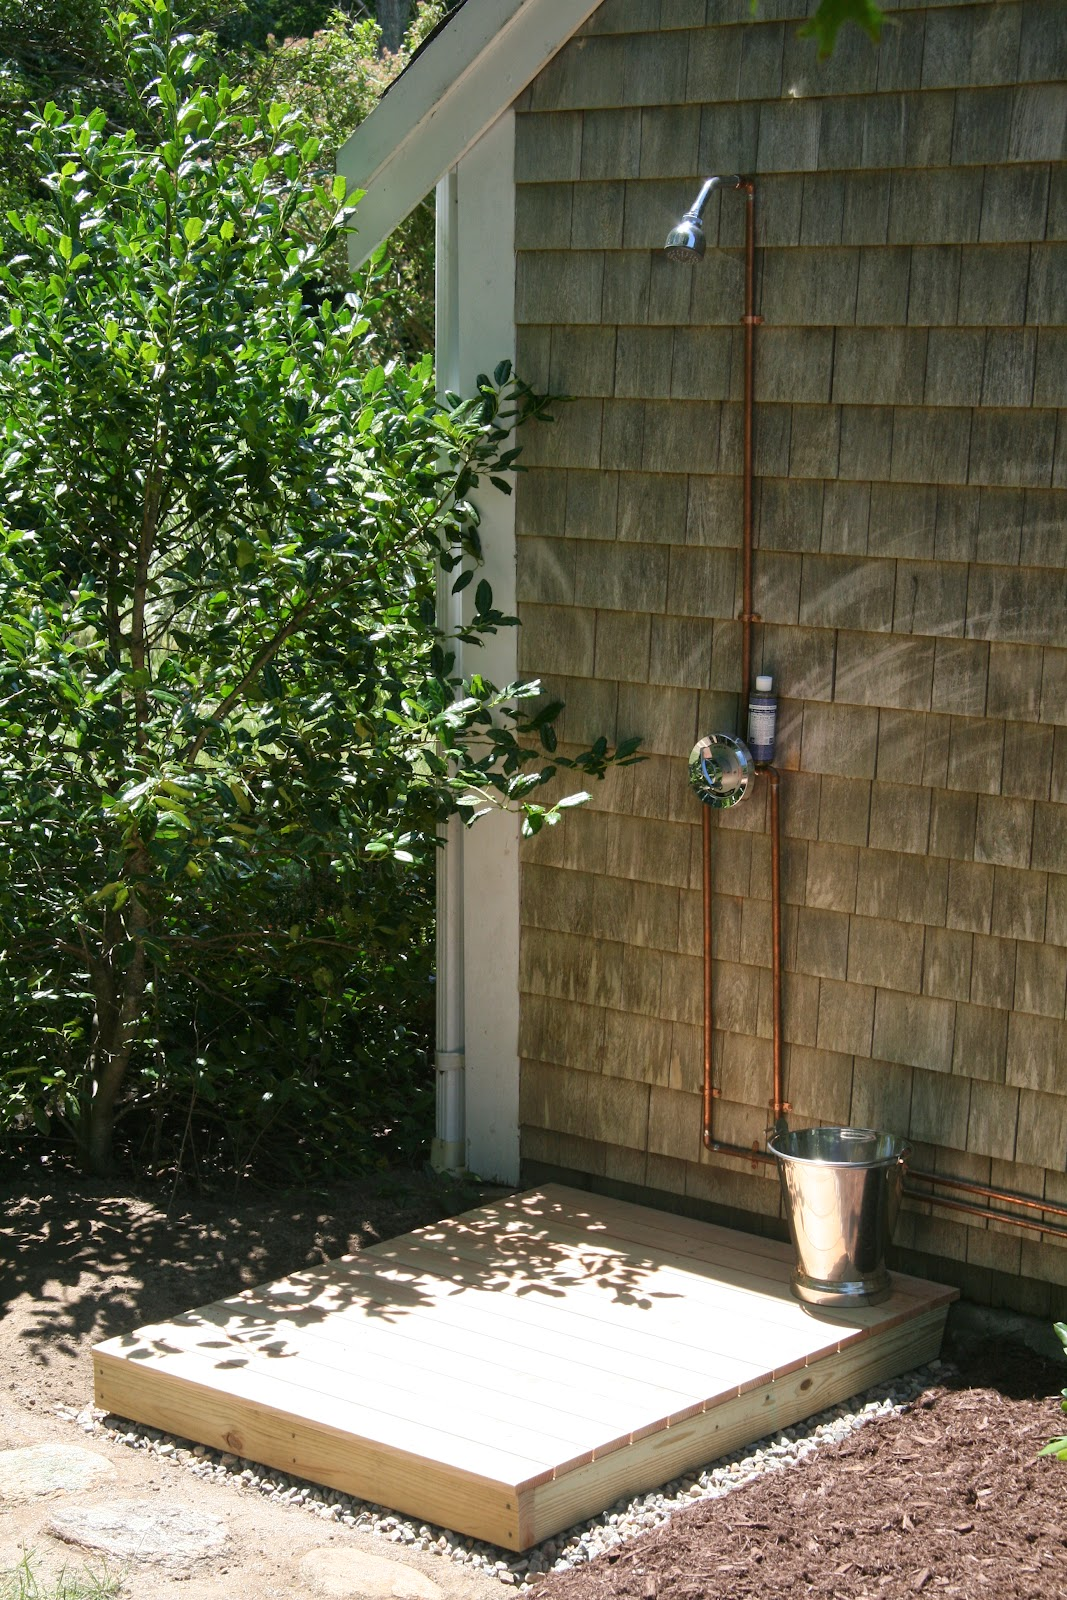 An Old Farm: Building an Outdoor Shower